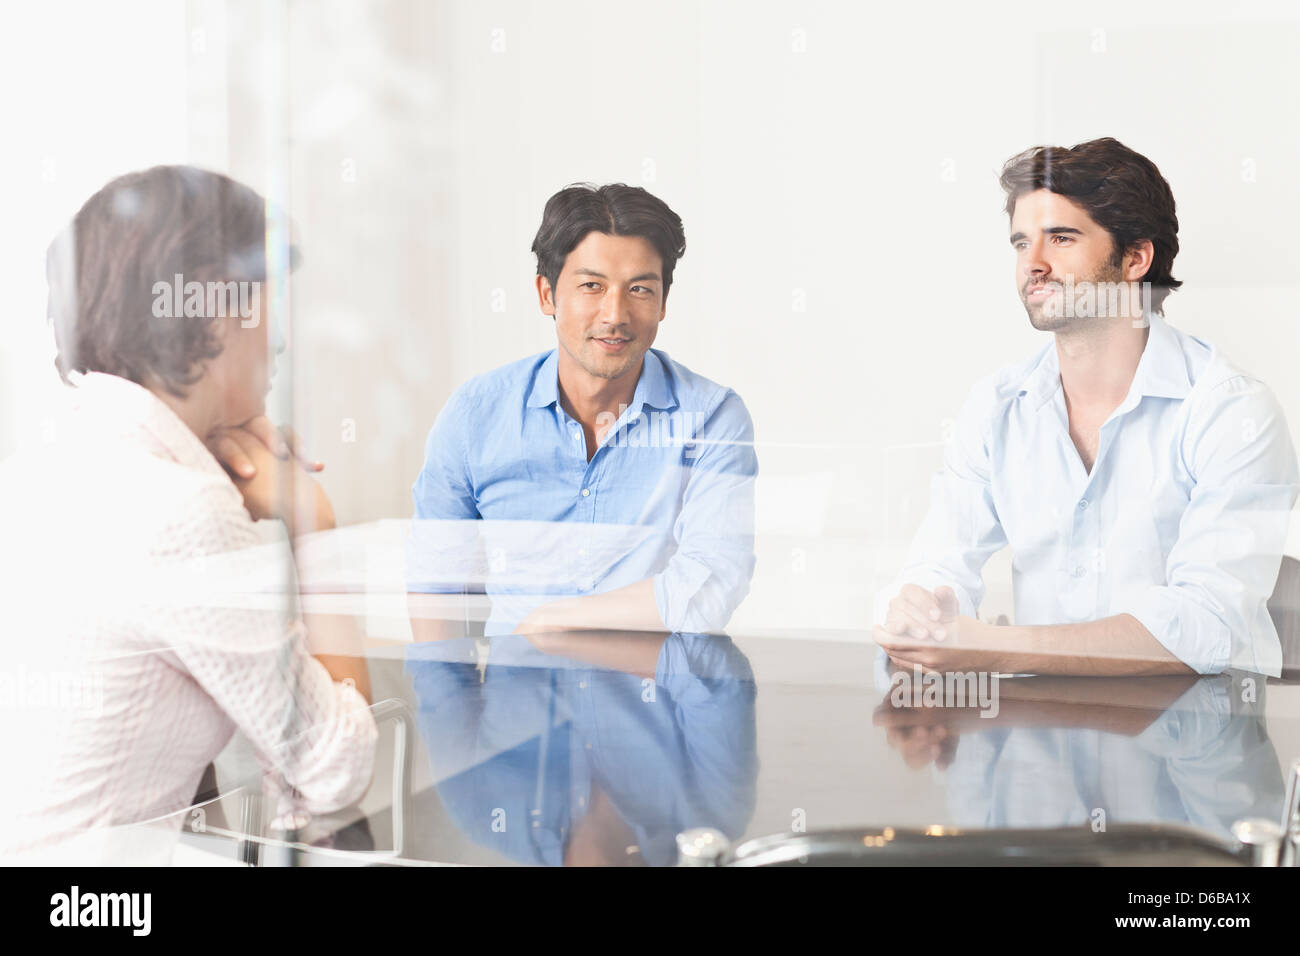 Business people viewed through window - Stock Image